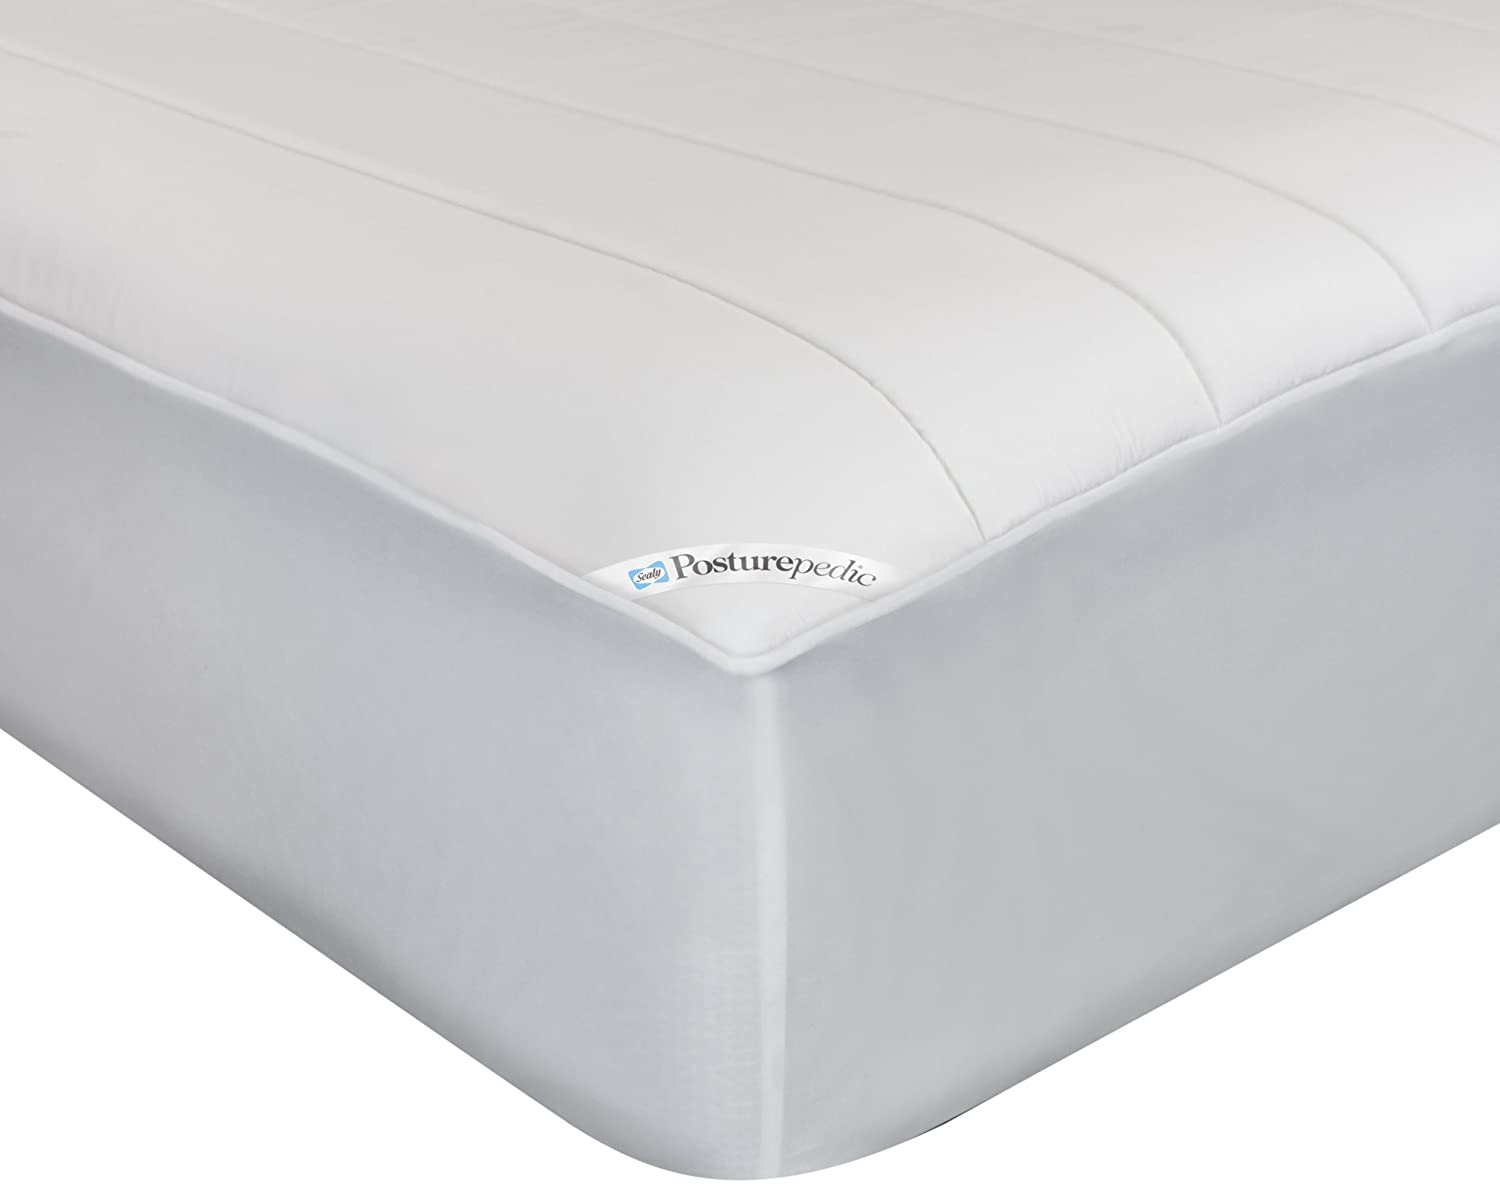 Sealy Posturepedic Memory Foam Fitted Mattress Protector